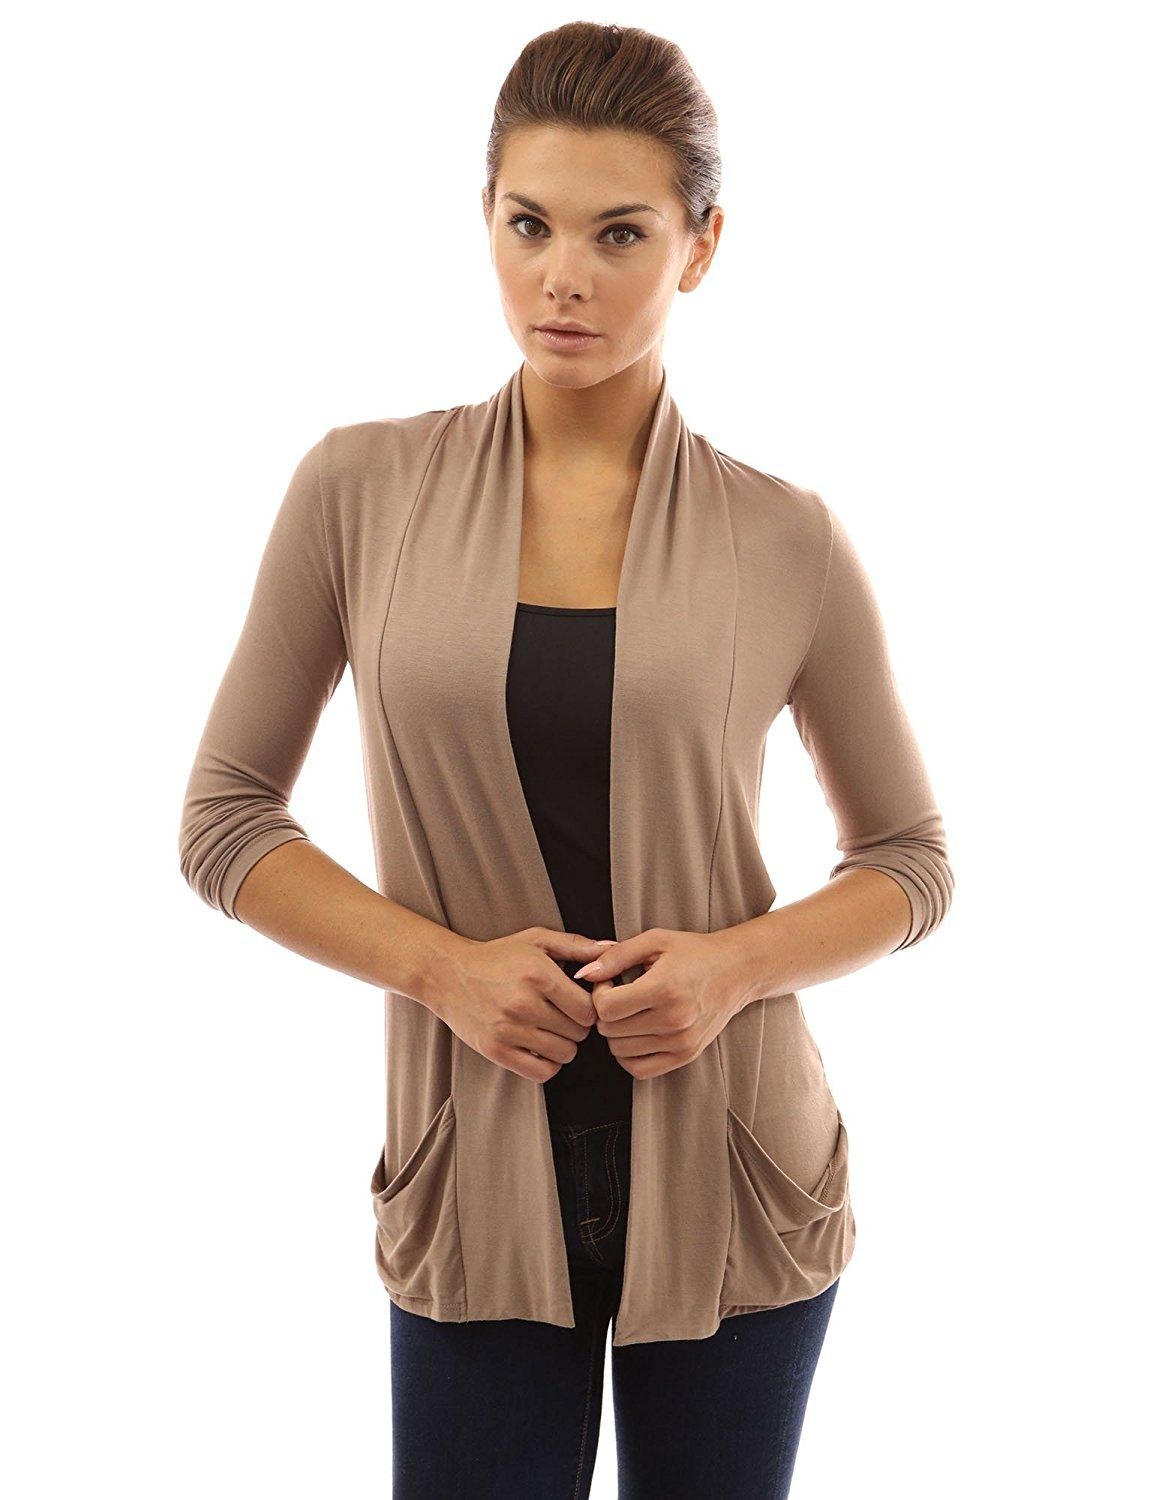 91c7ed8bbed PattyBoutik Women s Open Front Pockets Cardigan at Amazon Women s Clothing  store